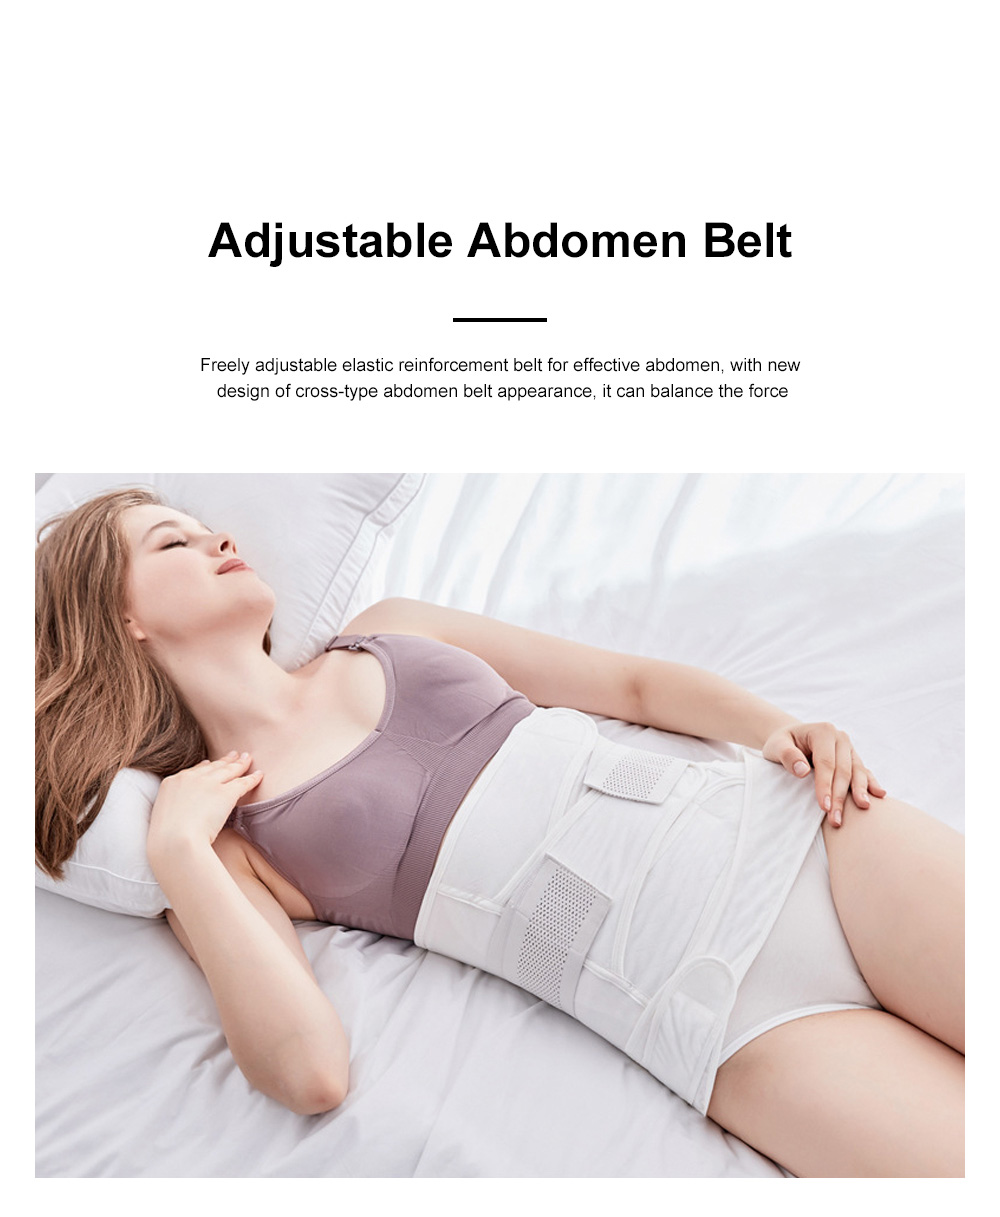 Breathable Postpartum Women Body Shaper Belt For Abdomen After Delivery Waist Trainer Super-strength Pregnant Recovery Control Weight Loss 2